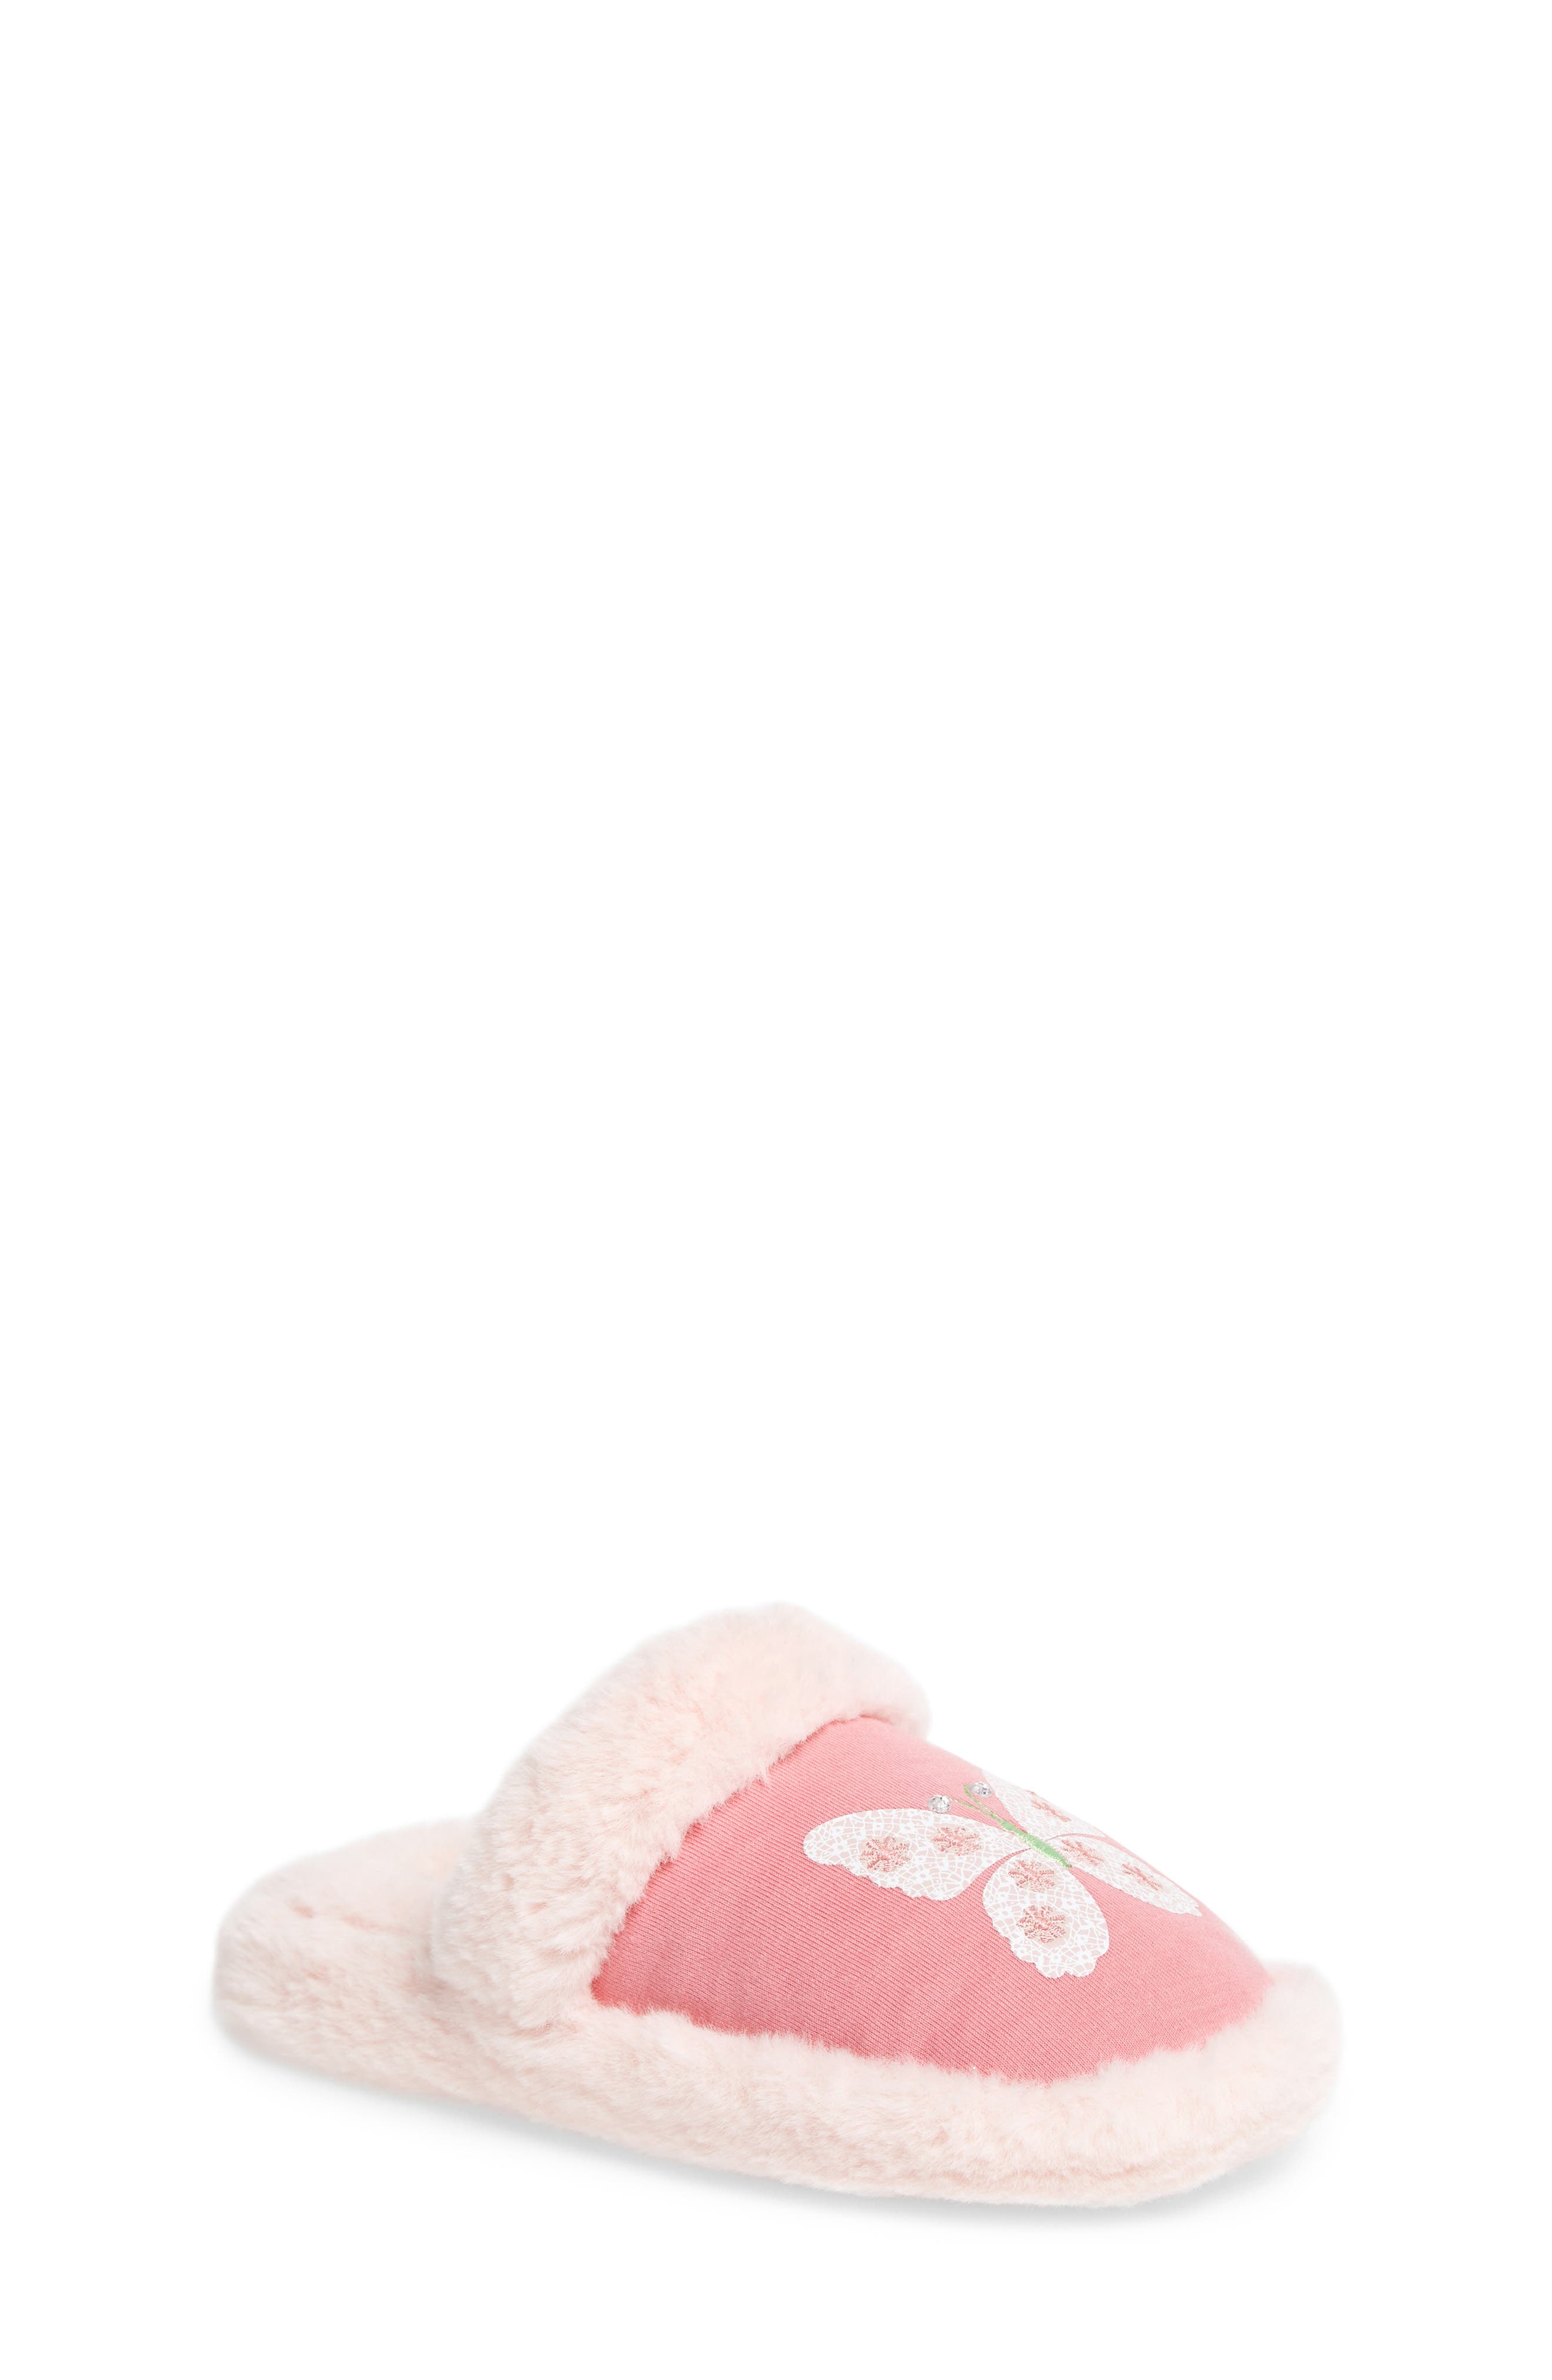 Alternate Image 1 Selected - WellieWishers from American Girl Ashlyn Faux Fur Slipper (Toddler, Little Kid & Big Kid)